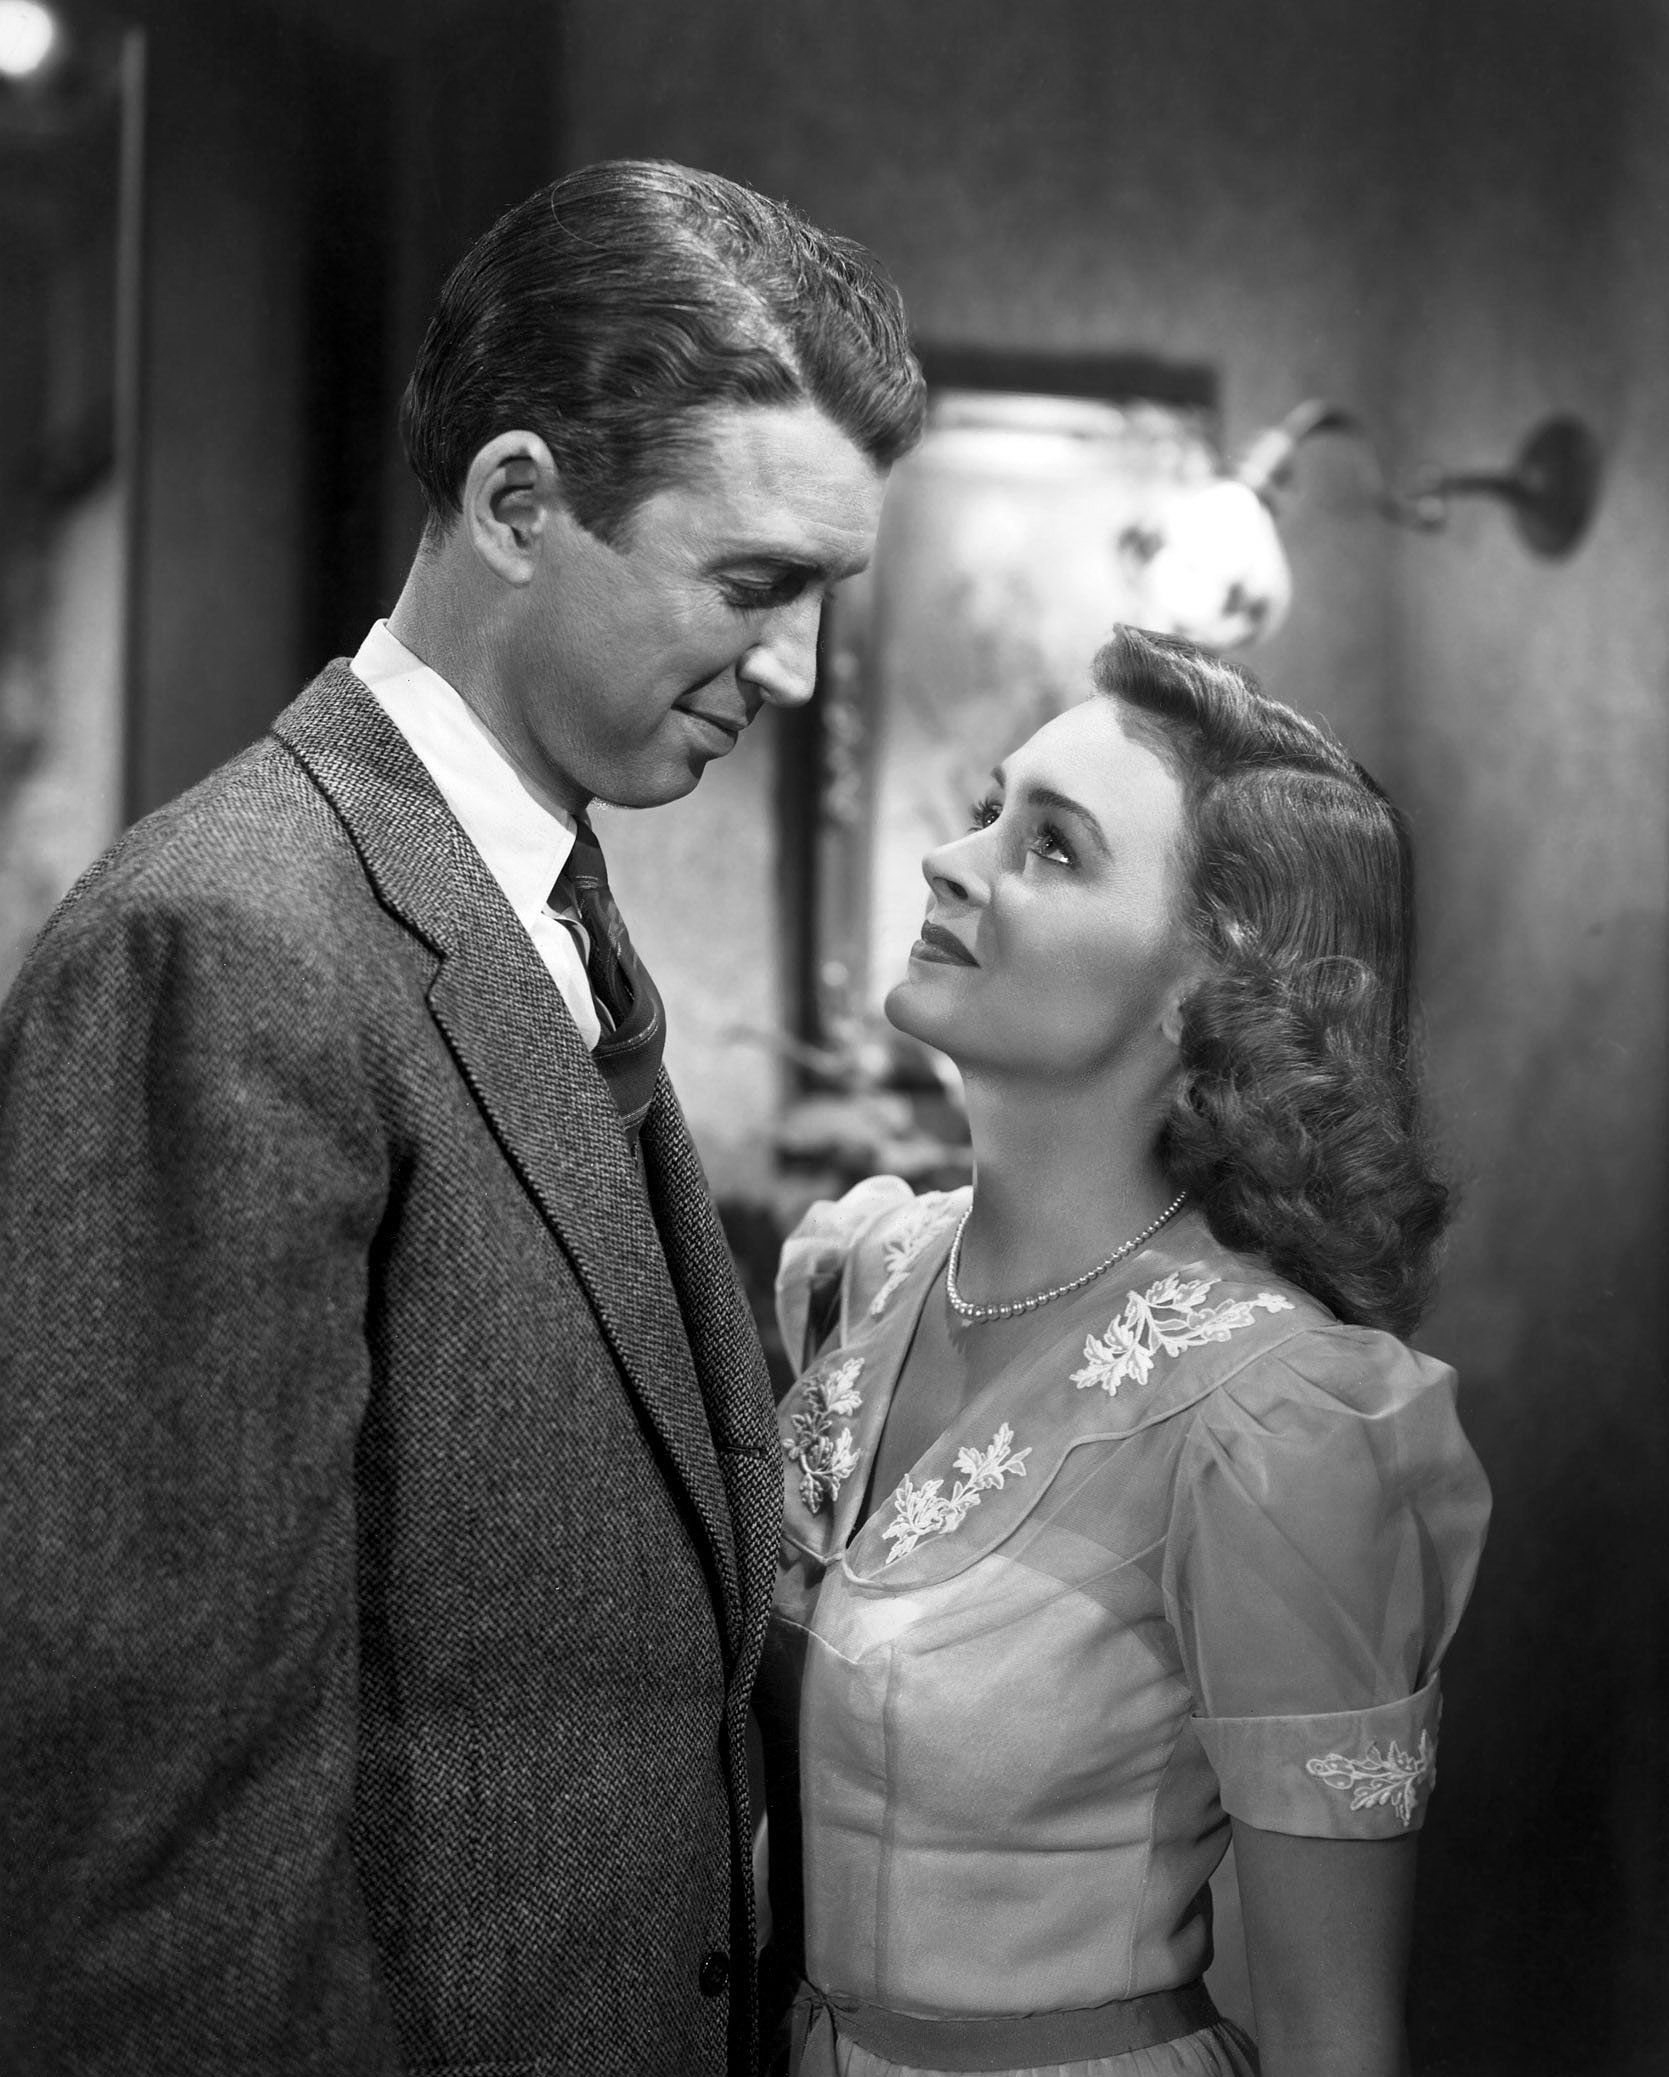 and Mary, It's a Wonderful Life Its a wonderful